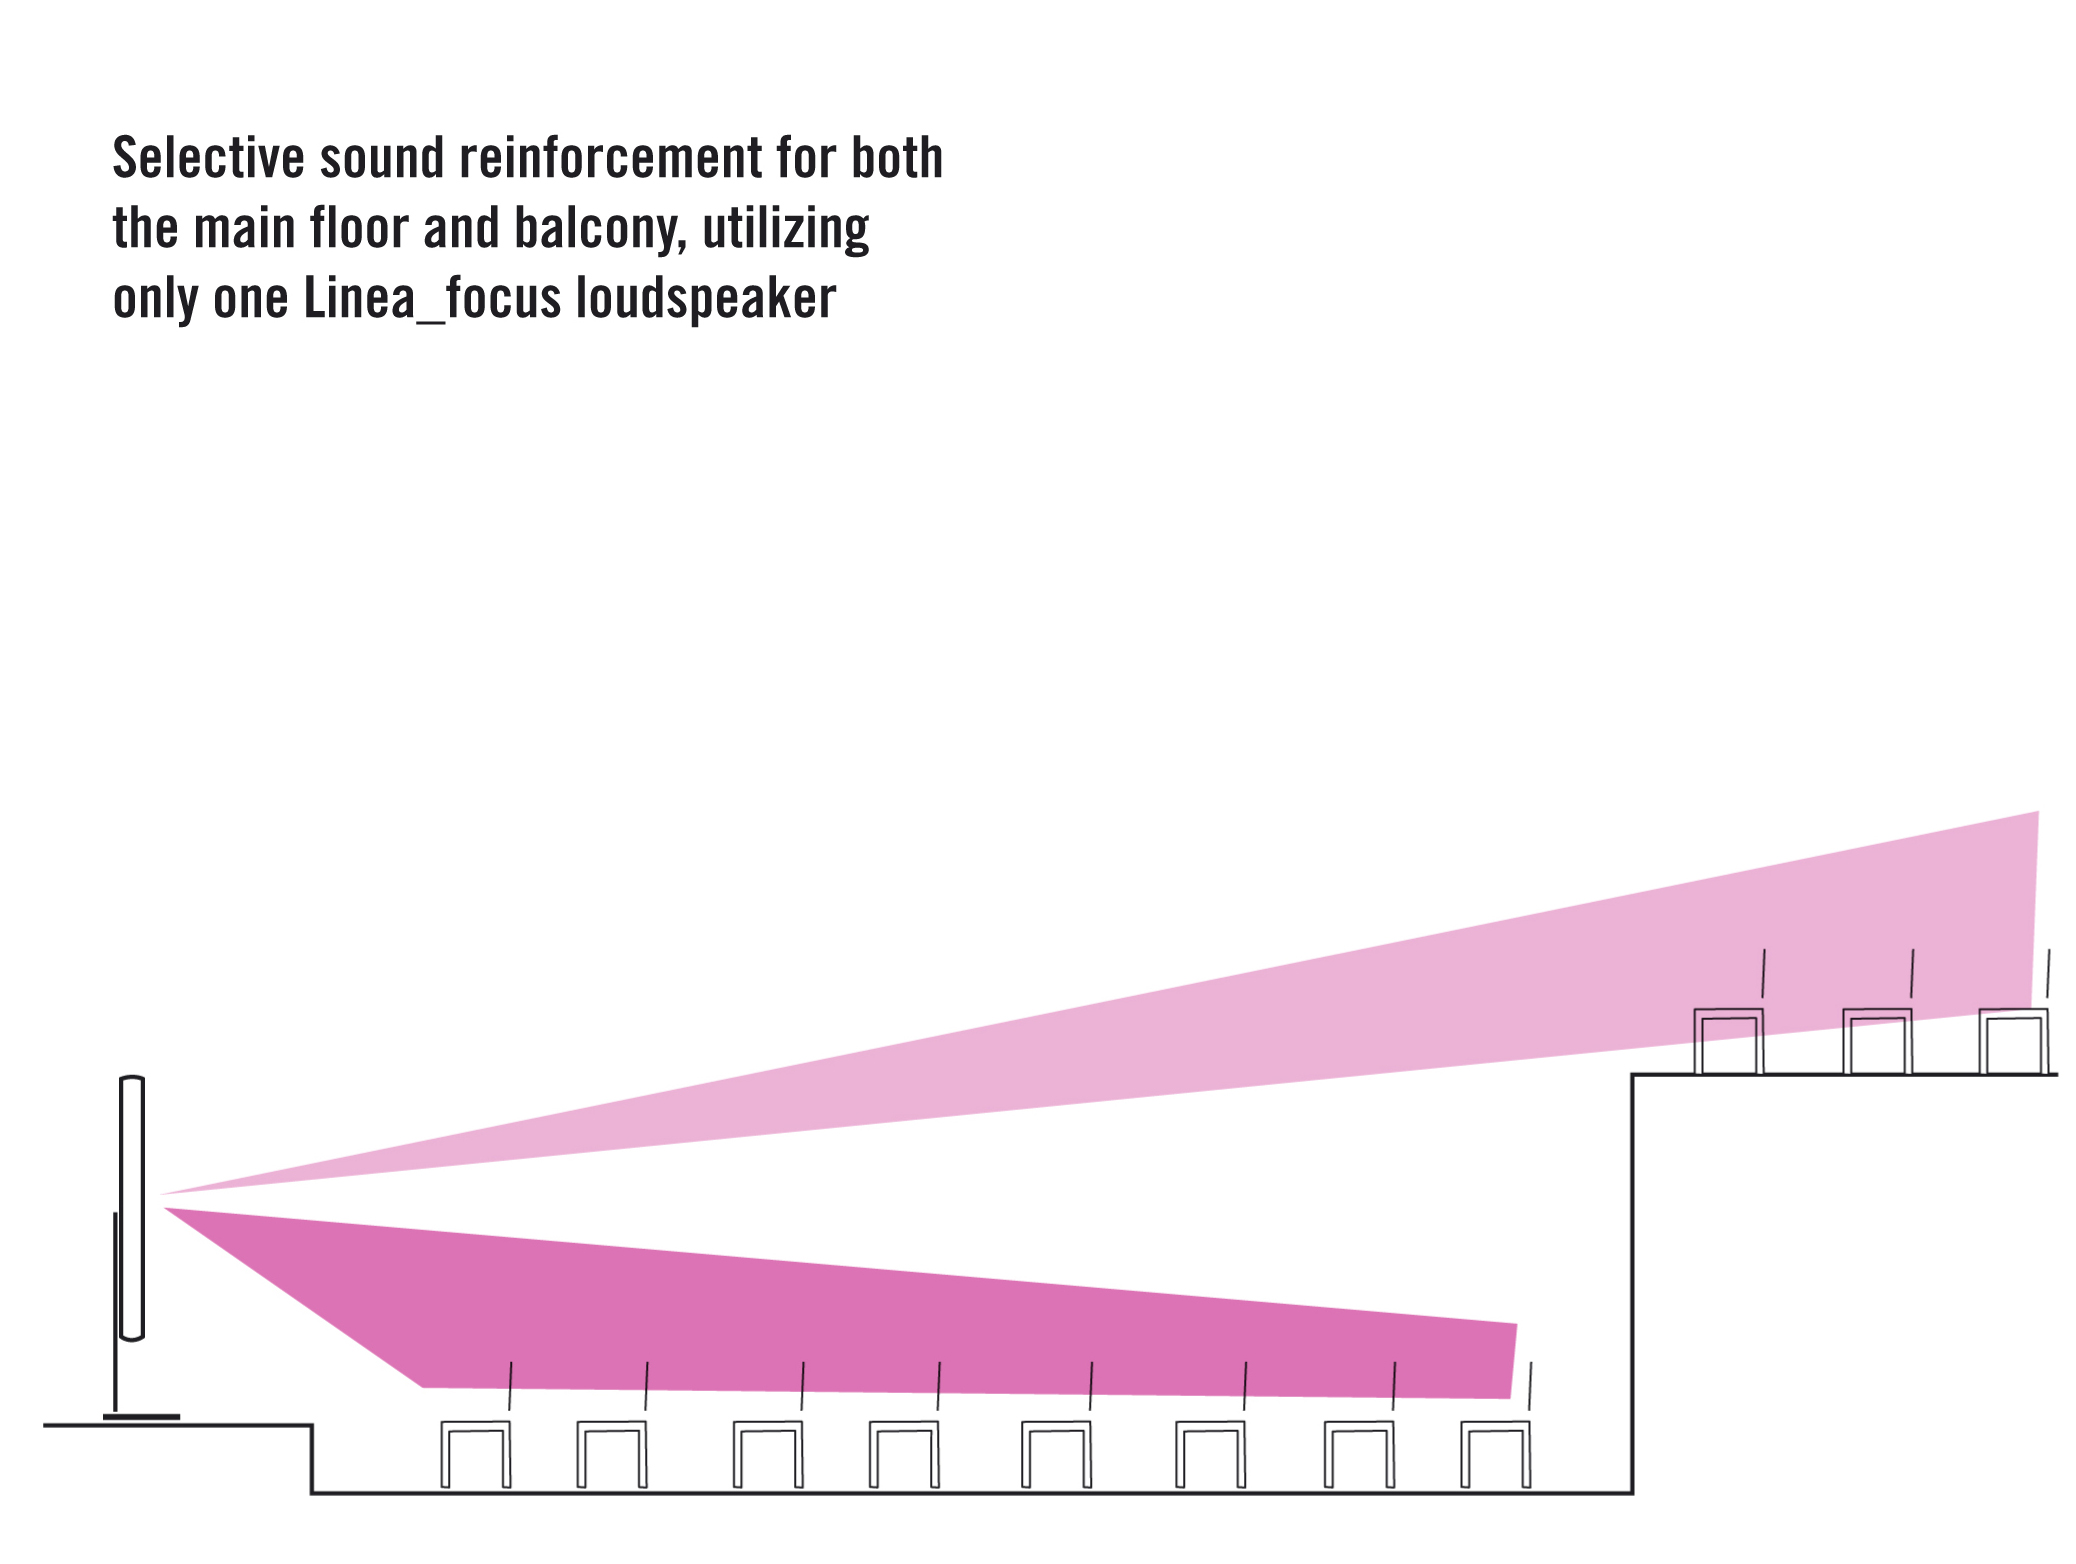 Fohhn, LFi-350 Install Series Active Electronically Steerable Line Array Speaker 24x4  24DSP Wit